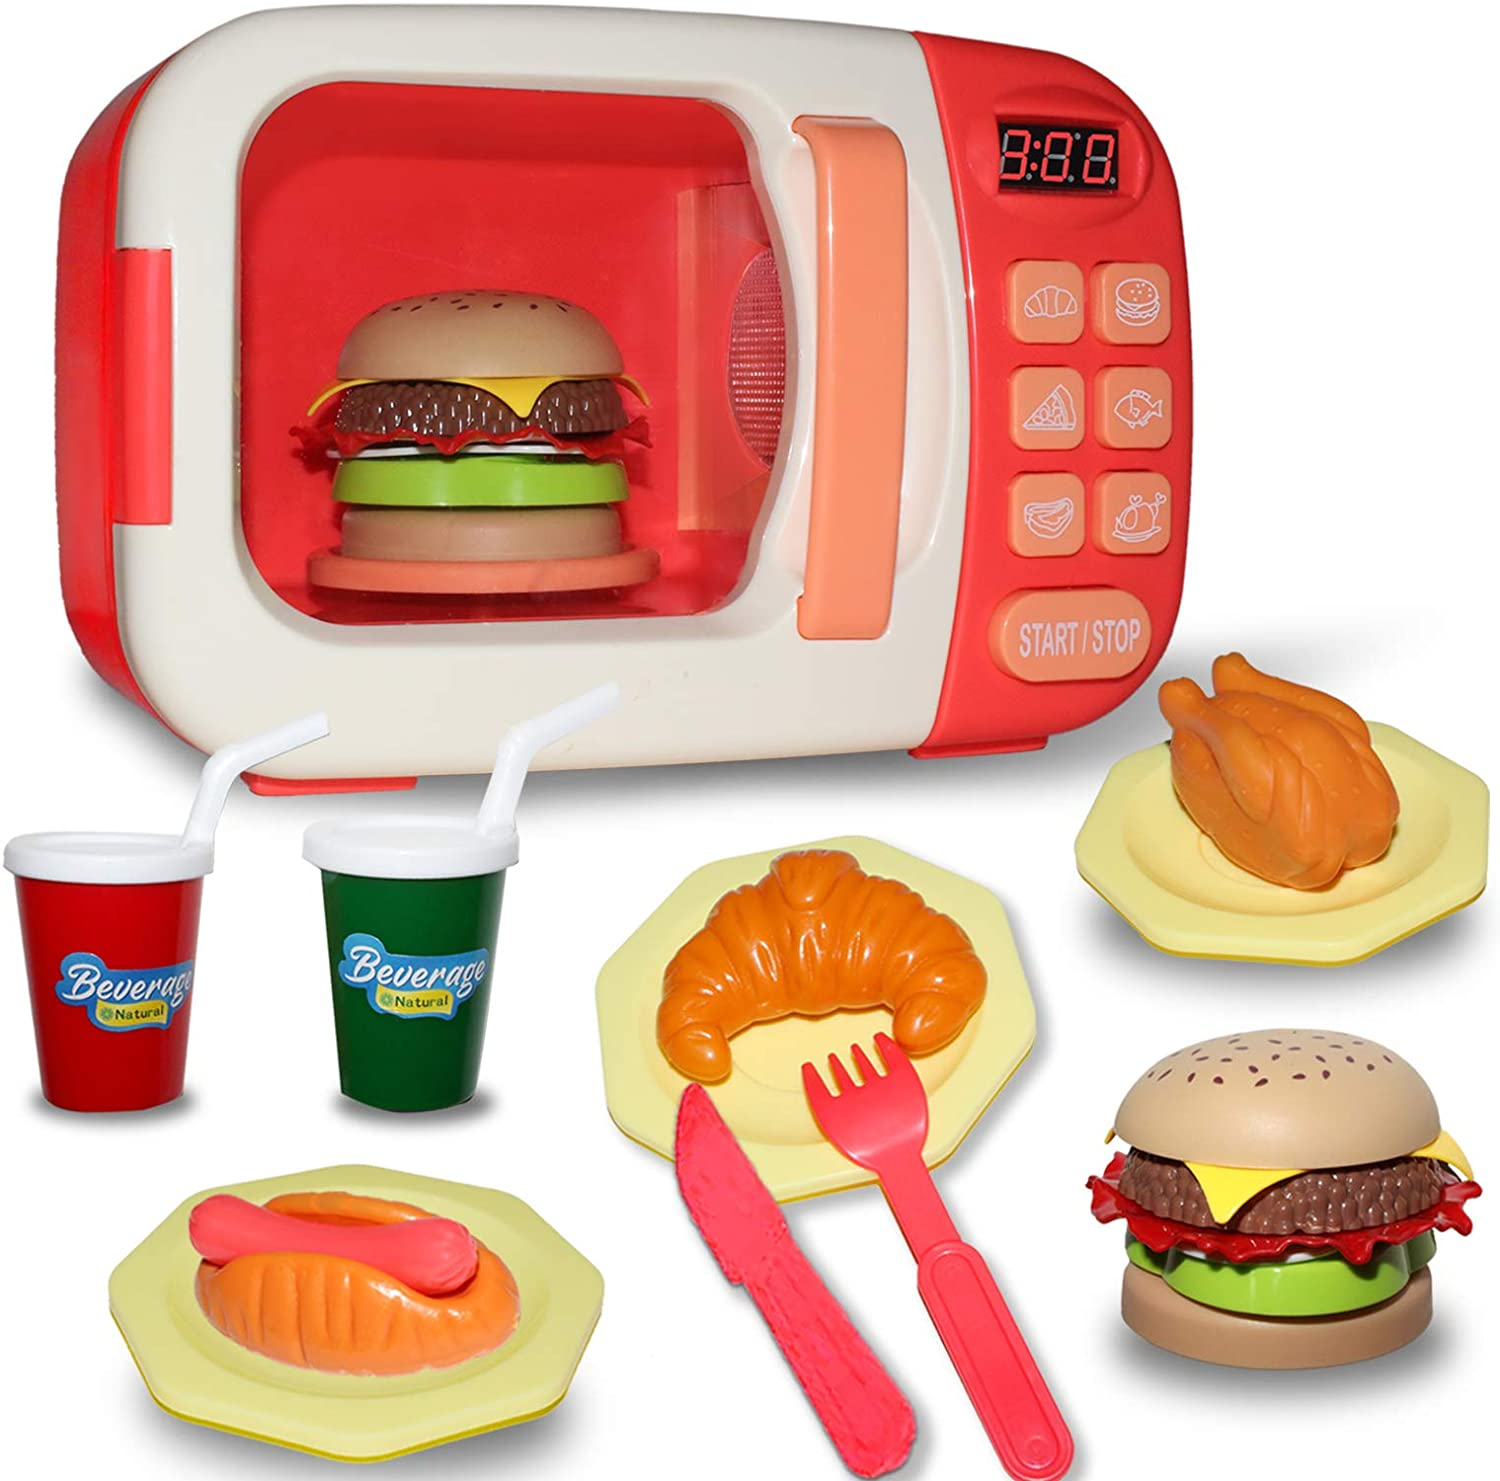 Kitchen toy microwave Play Set,Microwave toy kitchen accessories,Safe and Pretend Accessories Fake Food Educational Awareness Playset with Lights and Sounds for Toddlers Ages 3-12 and Older -RED